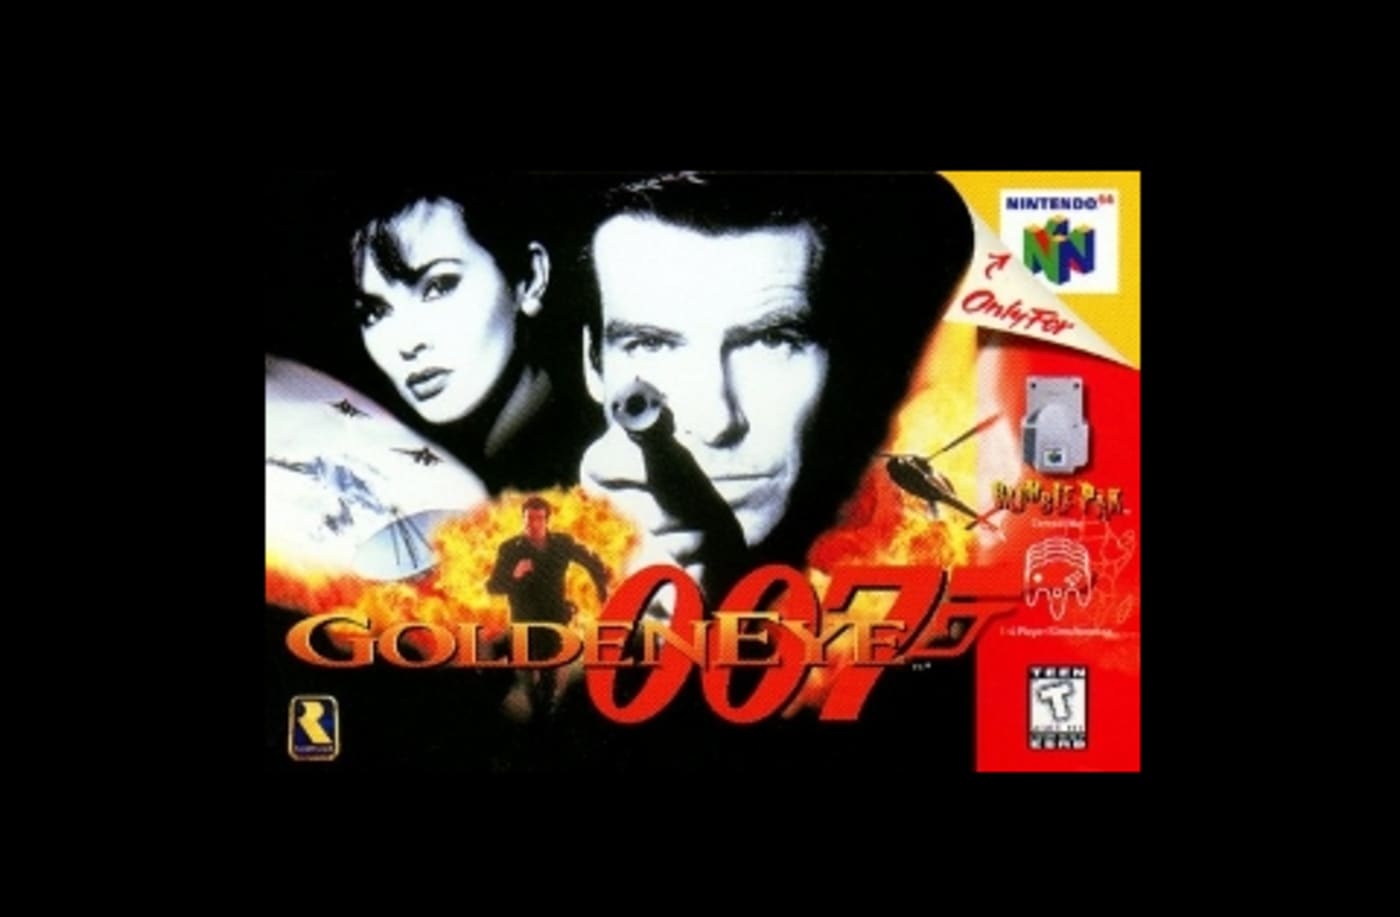 first person shooter game golden eye 007